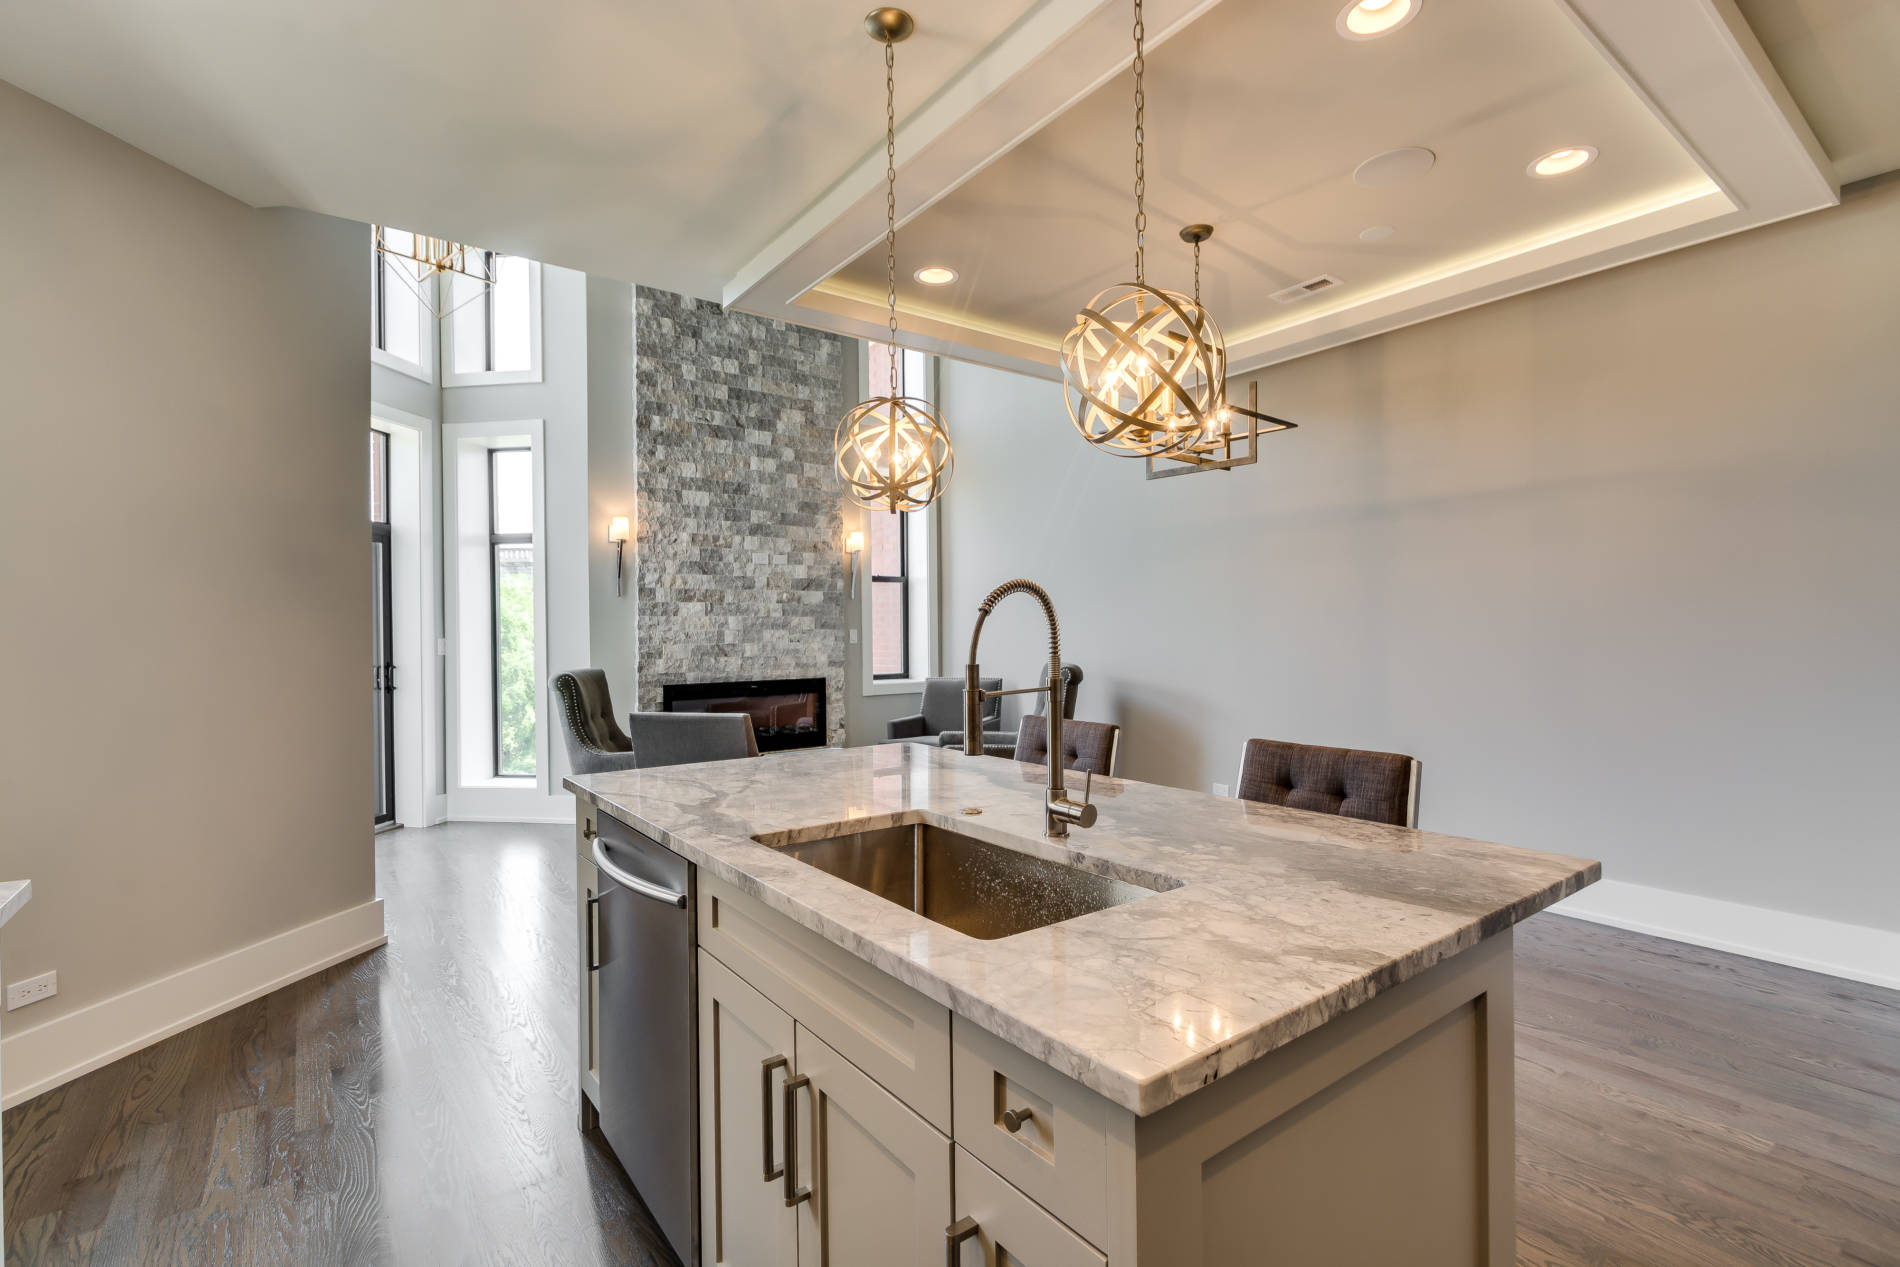 pictures of kitchen designs 4210 s ellis ave unit 3n consulting 4210